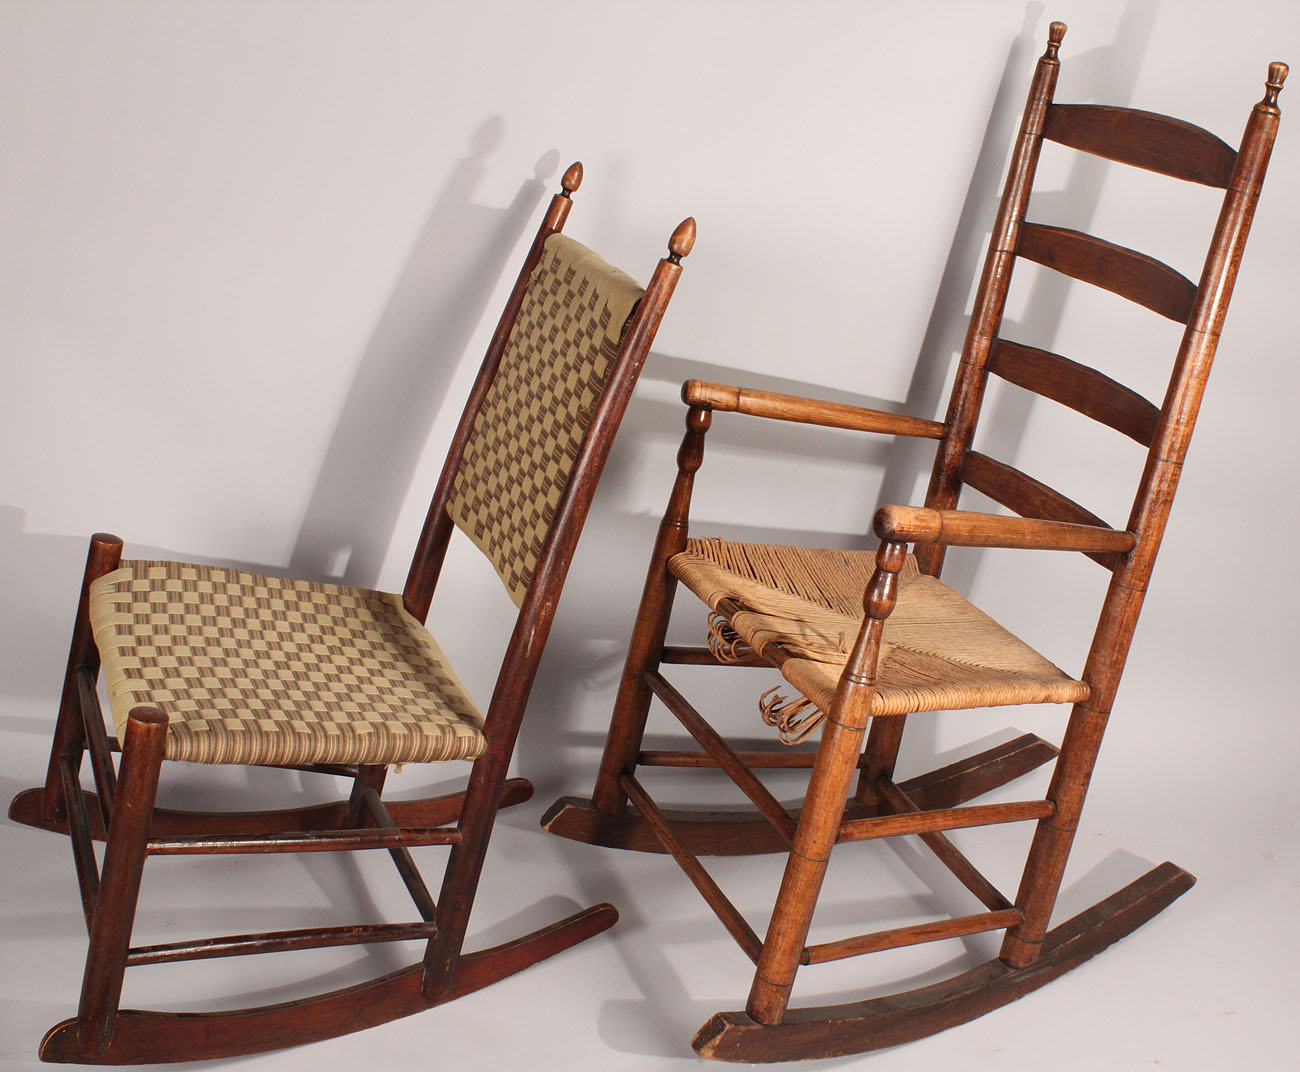 Antique shaker chairs - Lot 449 2 Rocking Chairs Shaker And Tennessee